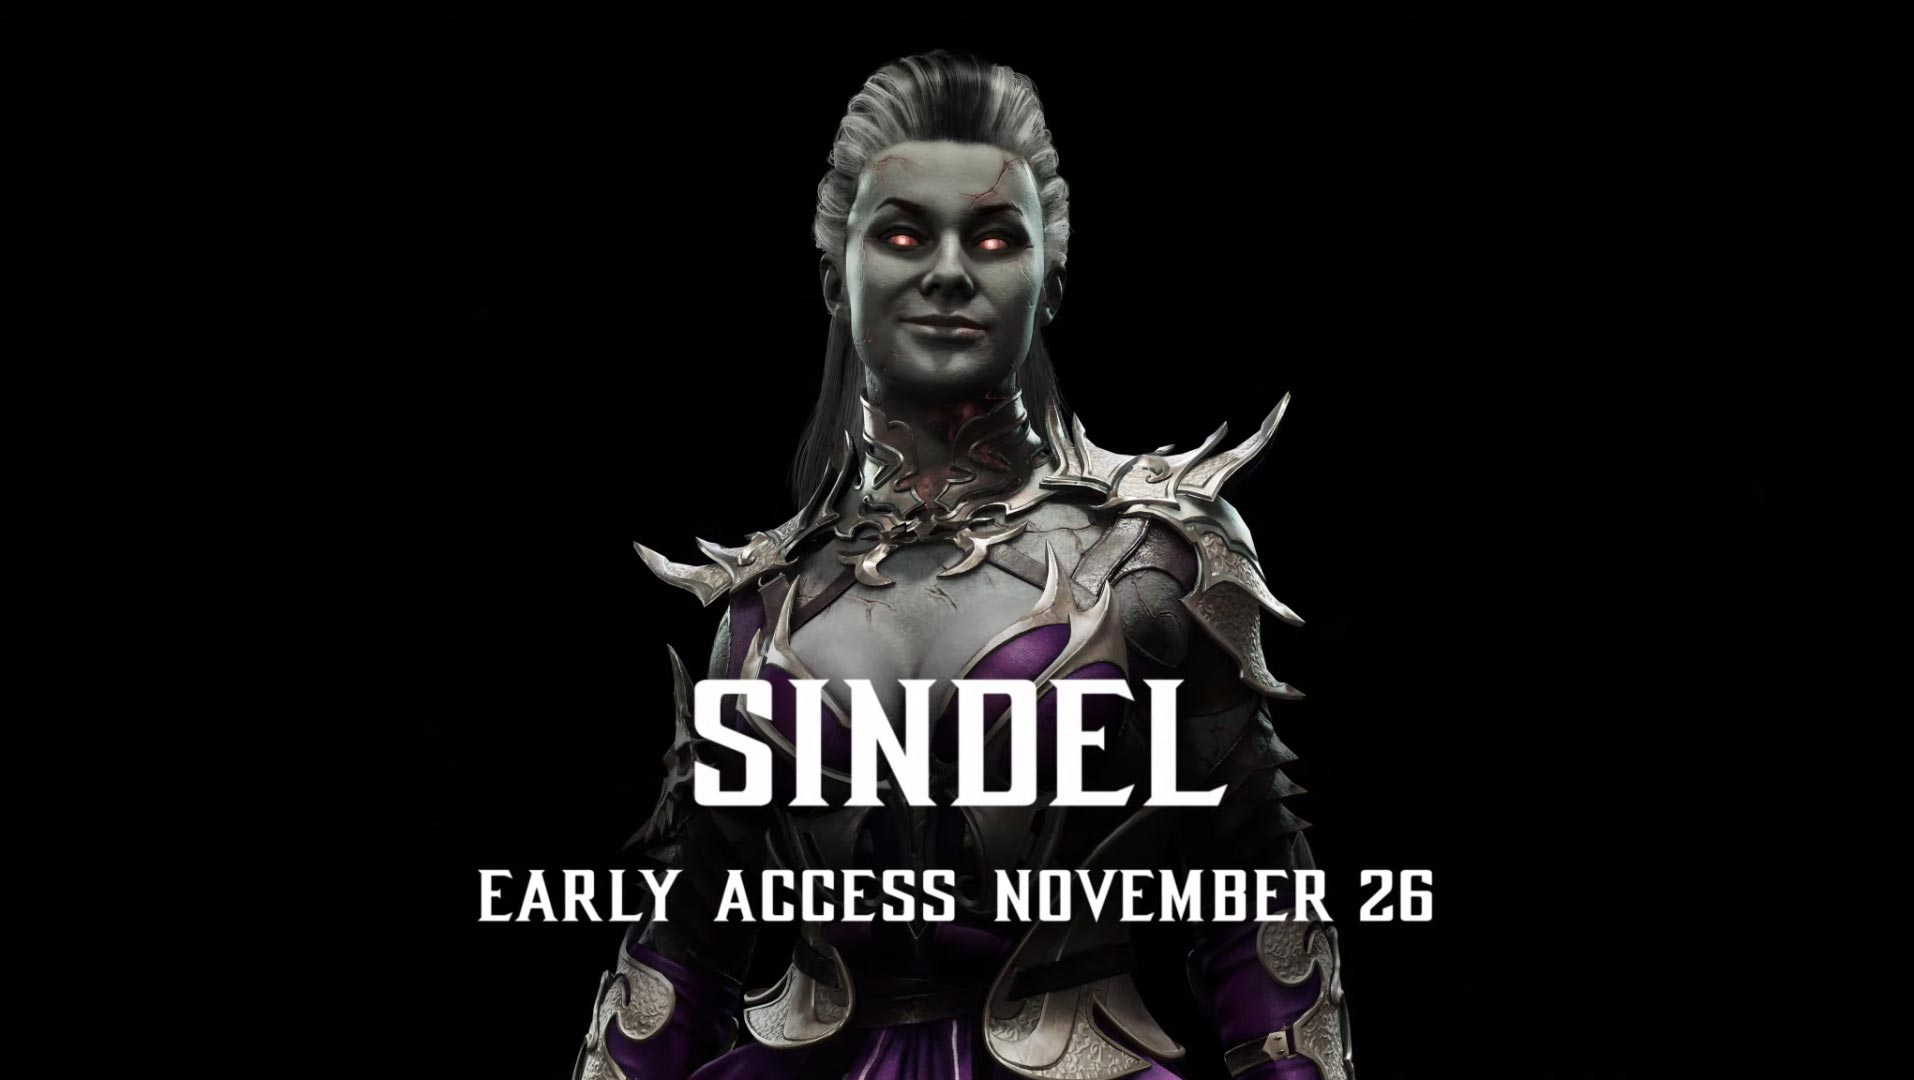 Sindel trailer 6 out of 8 image gallery